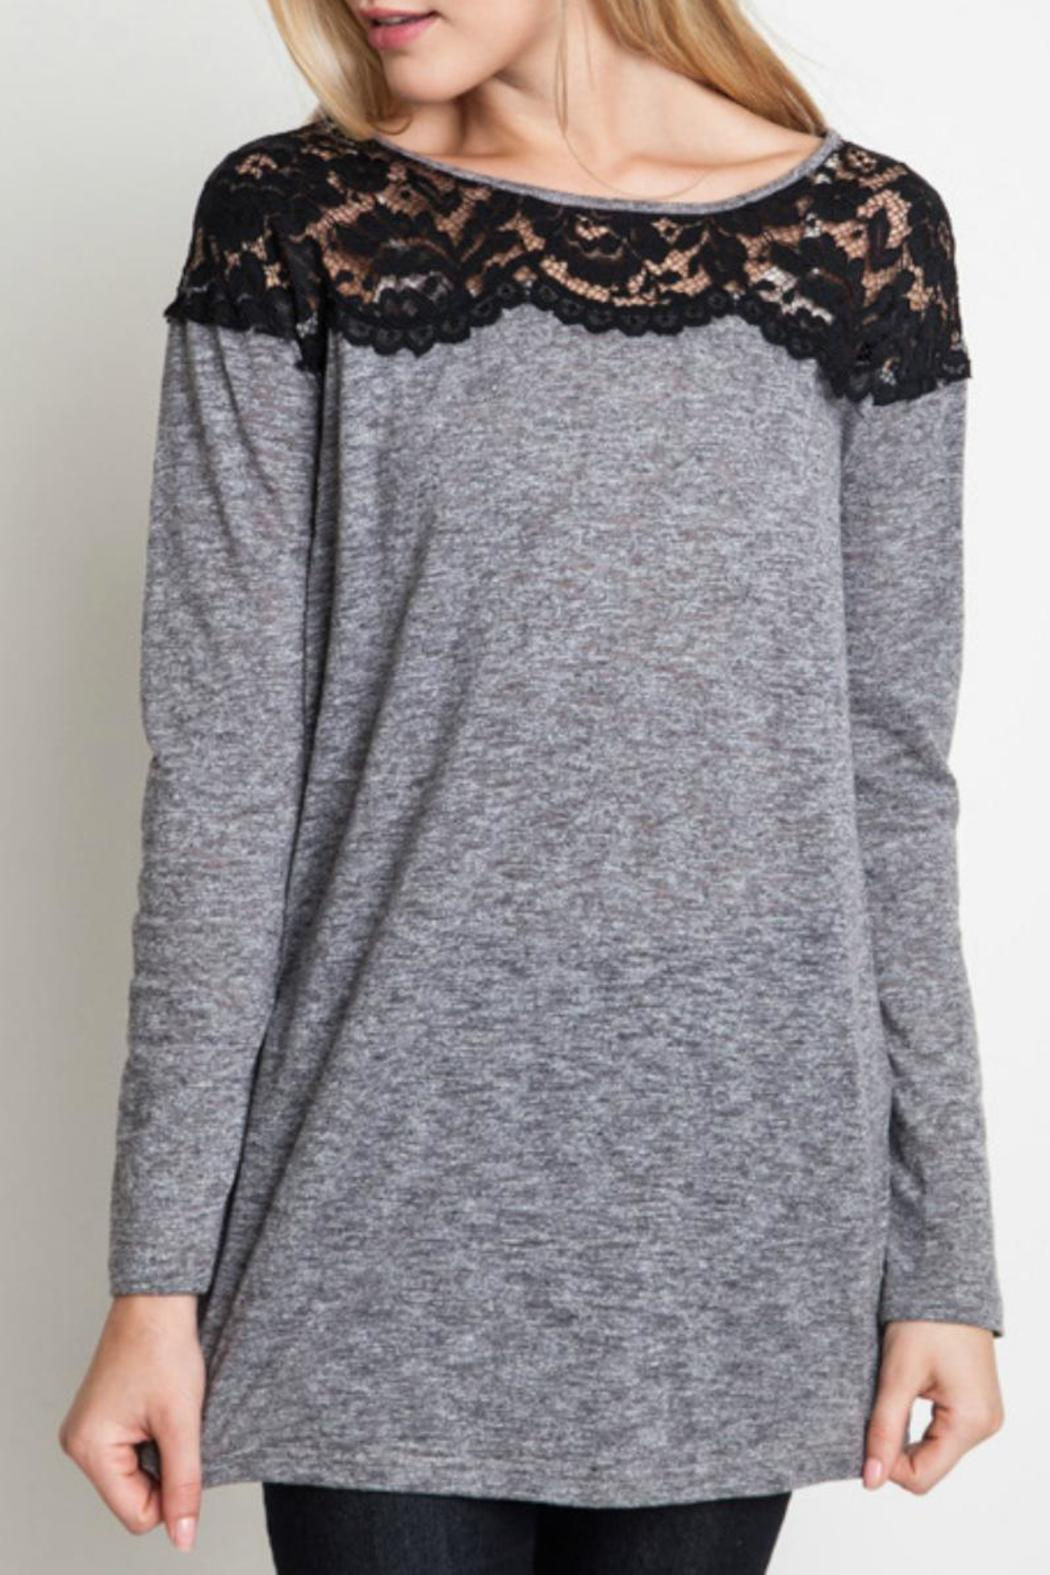 c913c260f1a91 Umgee USA Lace Shoulder Top from Kansas by Seirer s Clothing ...